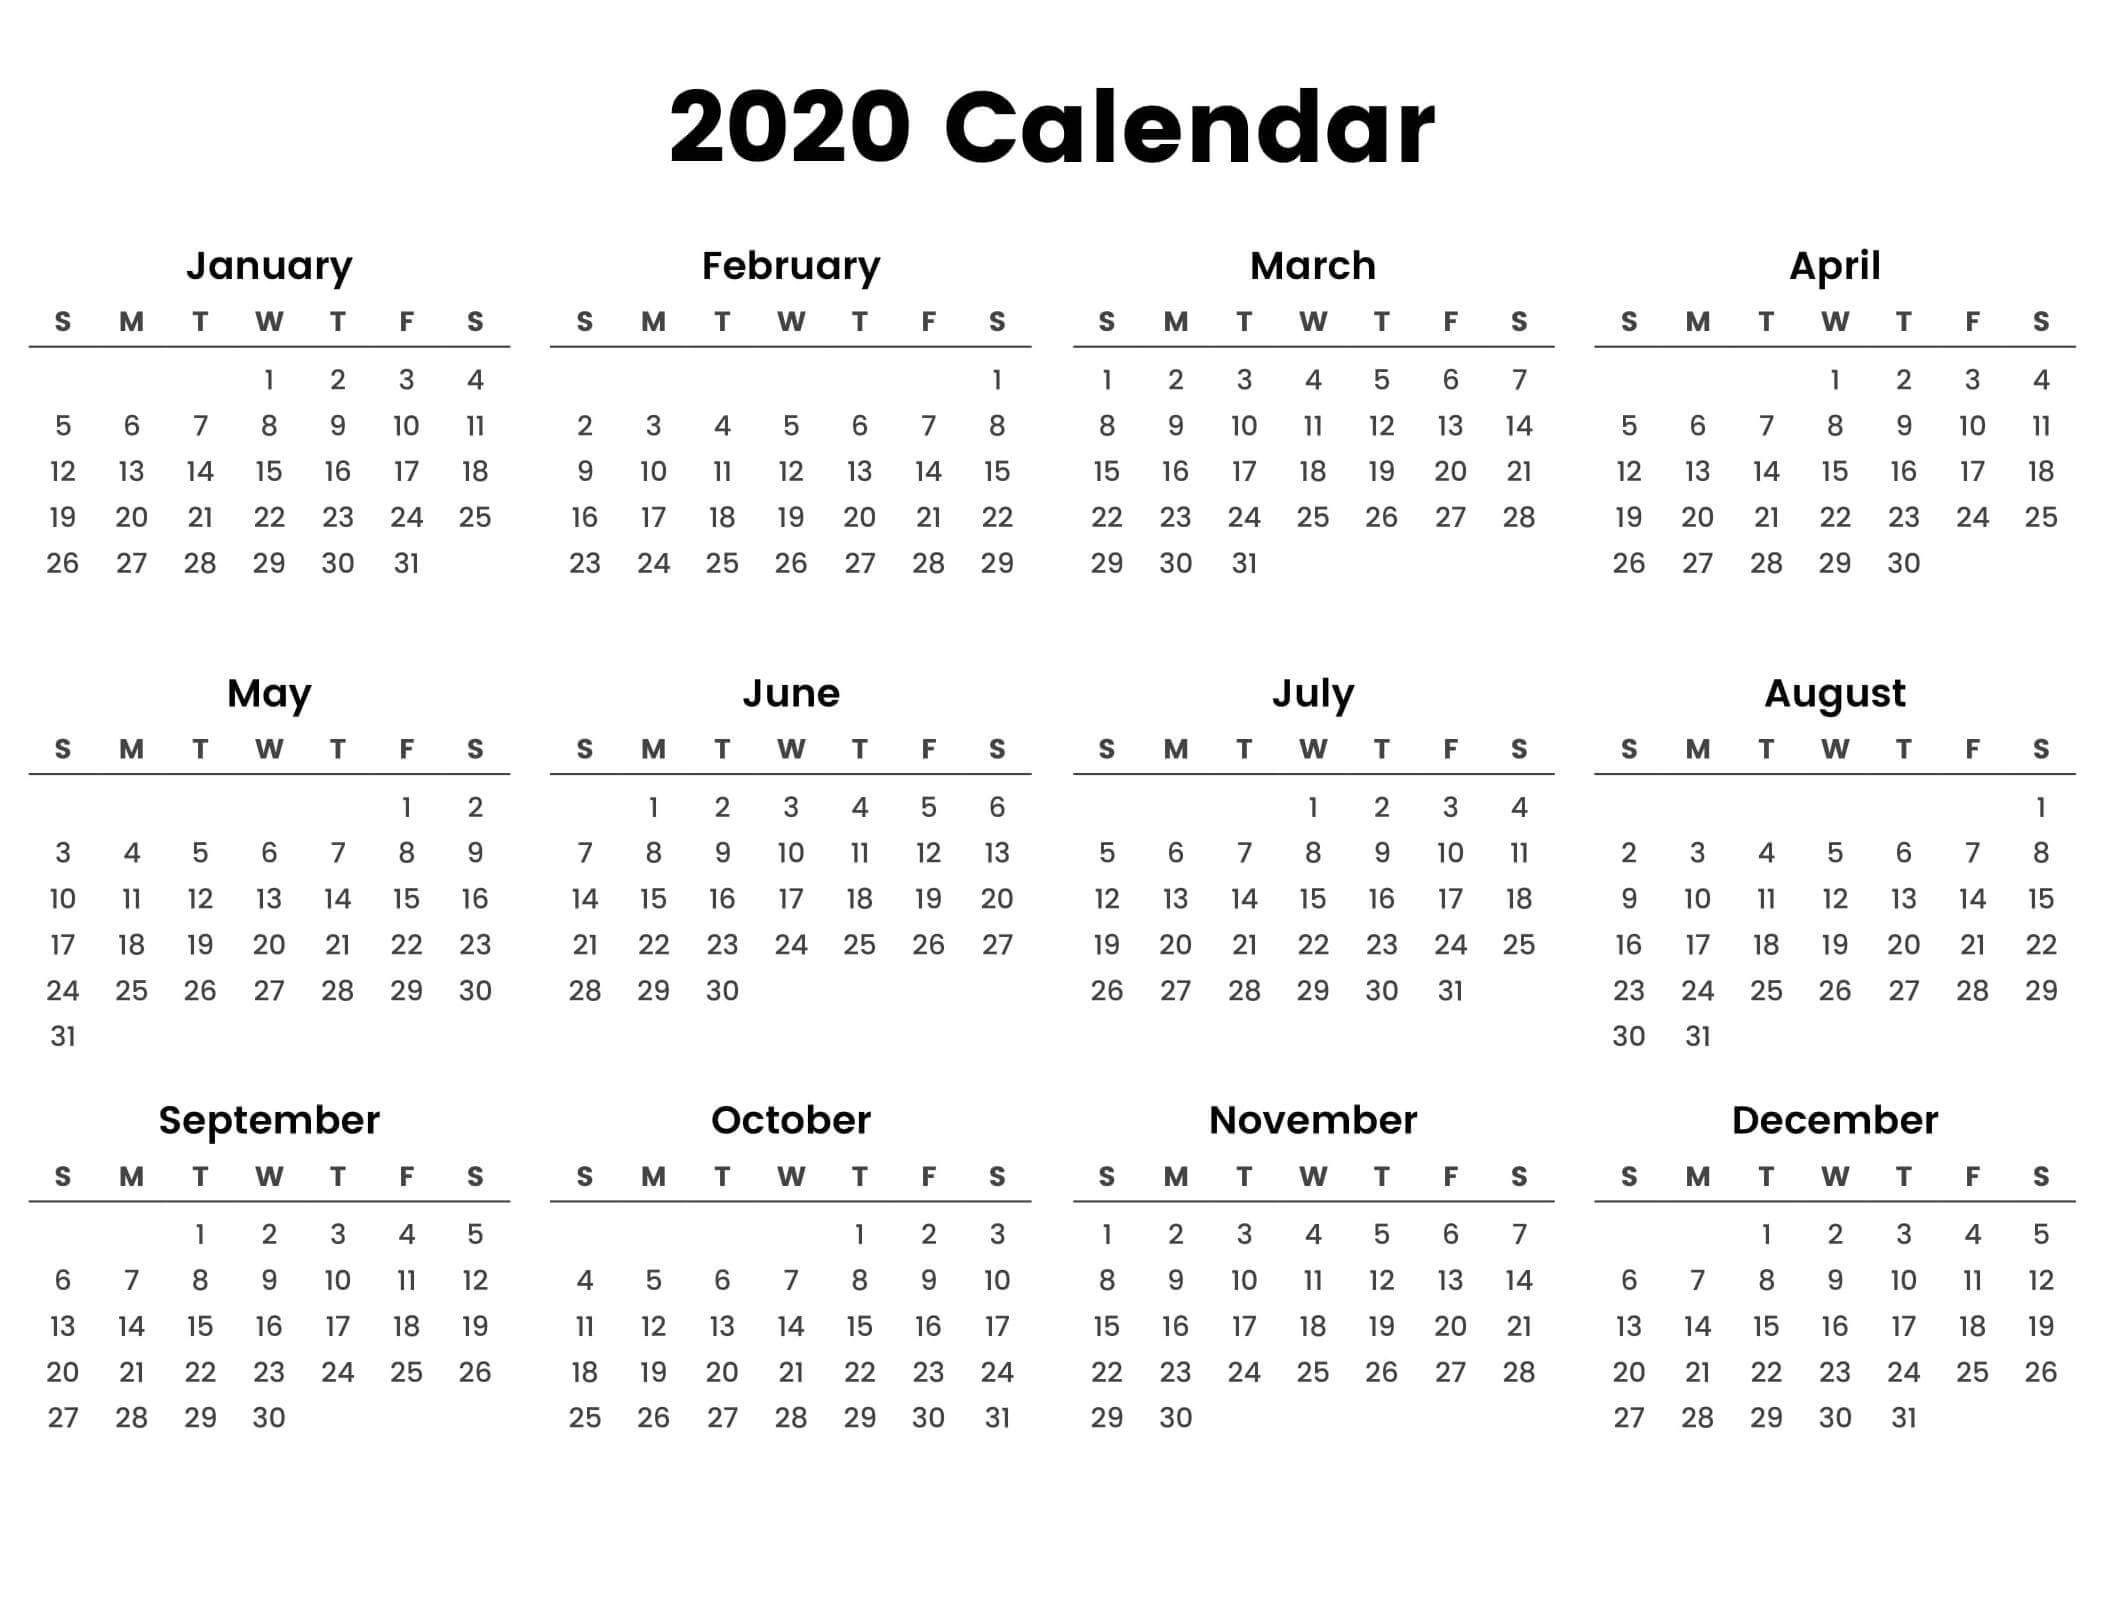 Large Yearly Calendar 2020 With Notes Pdf - Set Your Plan within Year At A Glance Calendar 2020 Free